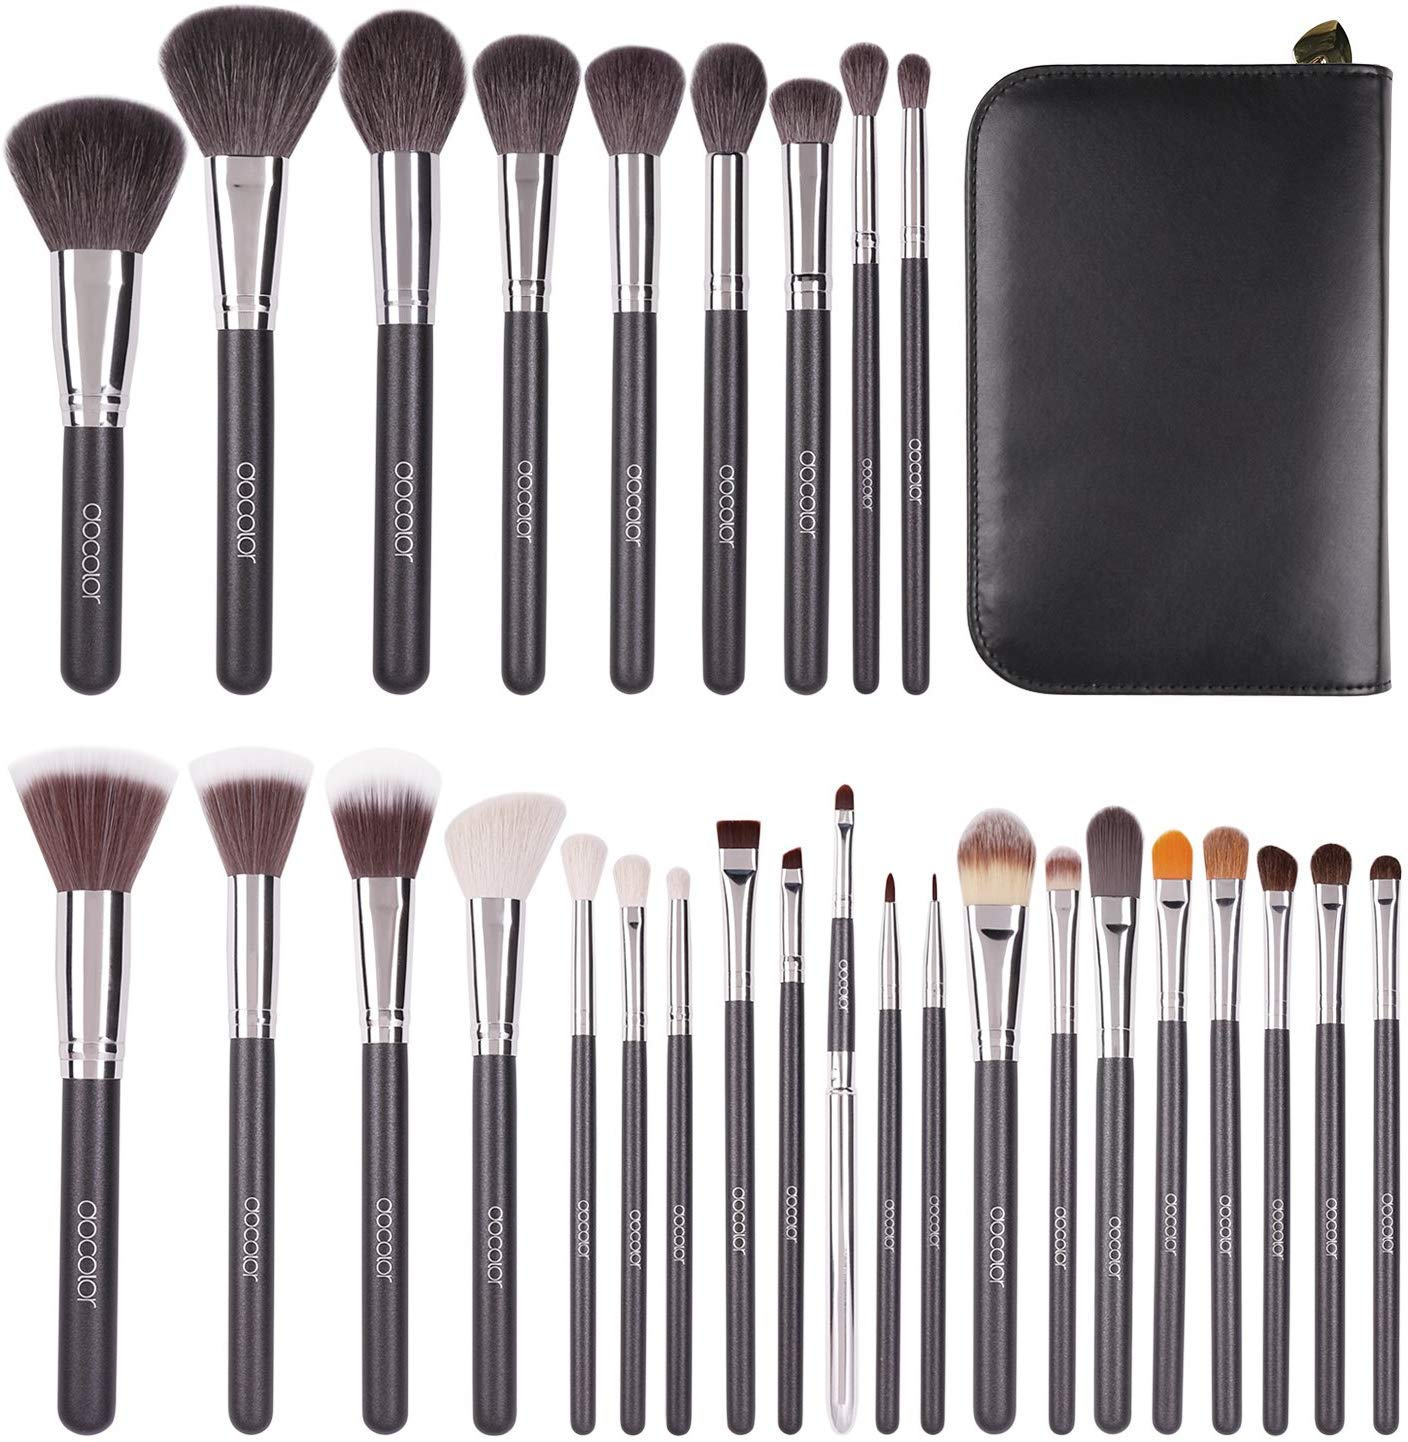 5. Docolor Makeup Brushes